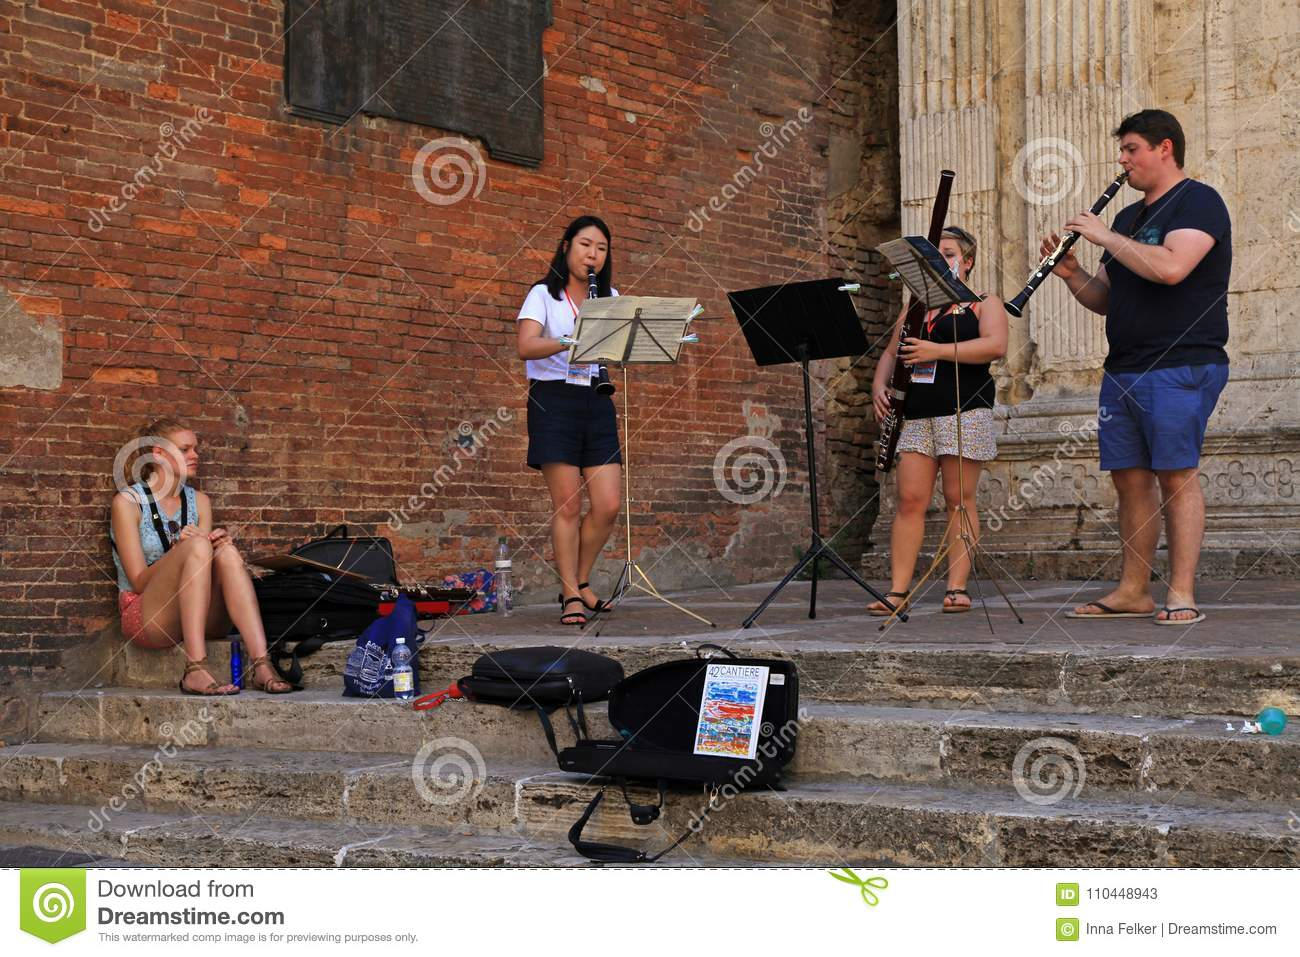 Street musicians in Tuscan town Montepulciano, Italy